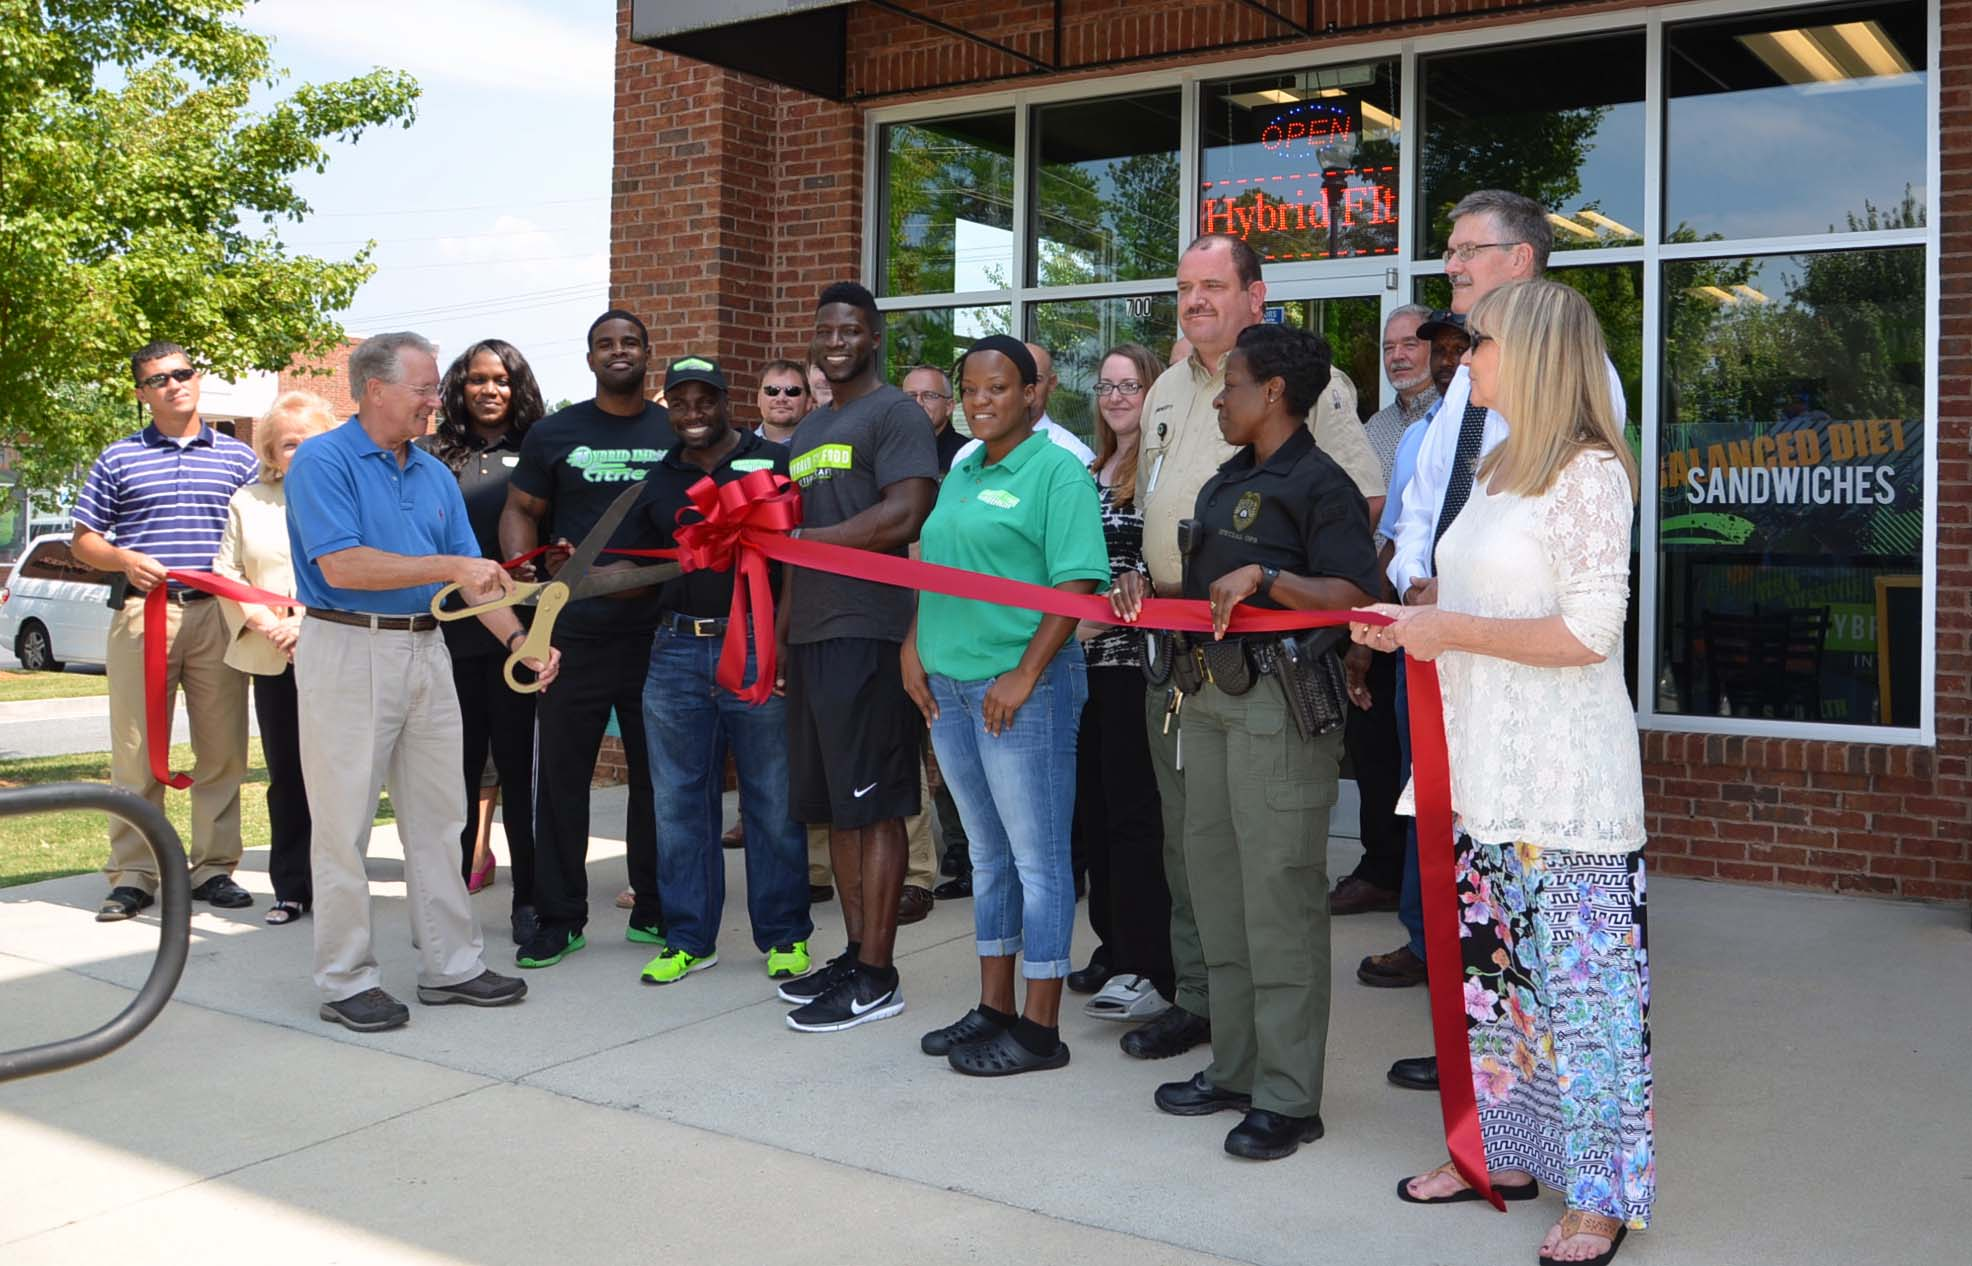 Ribbon Cutting for Hybrid Fit Food 1